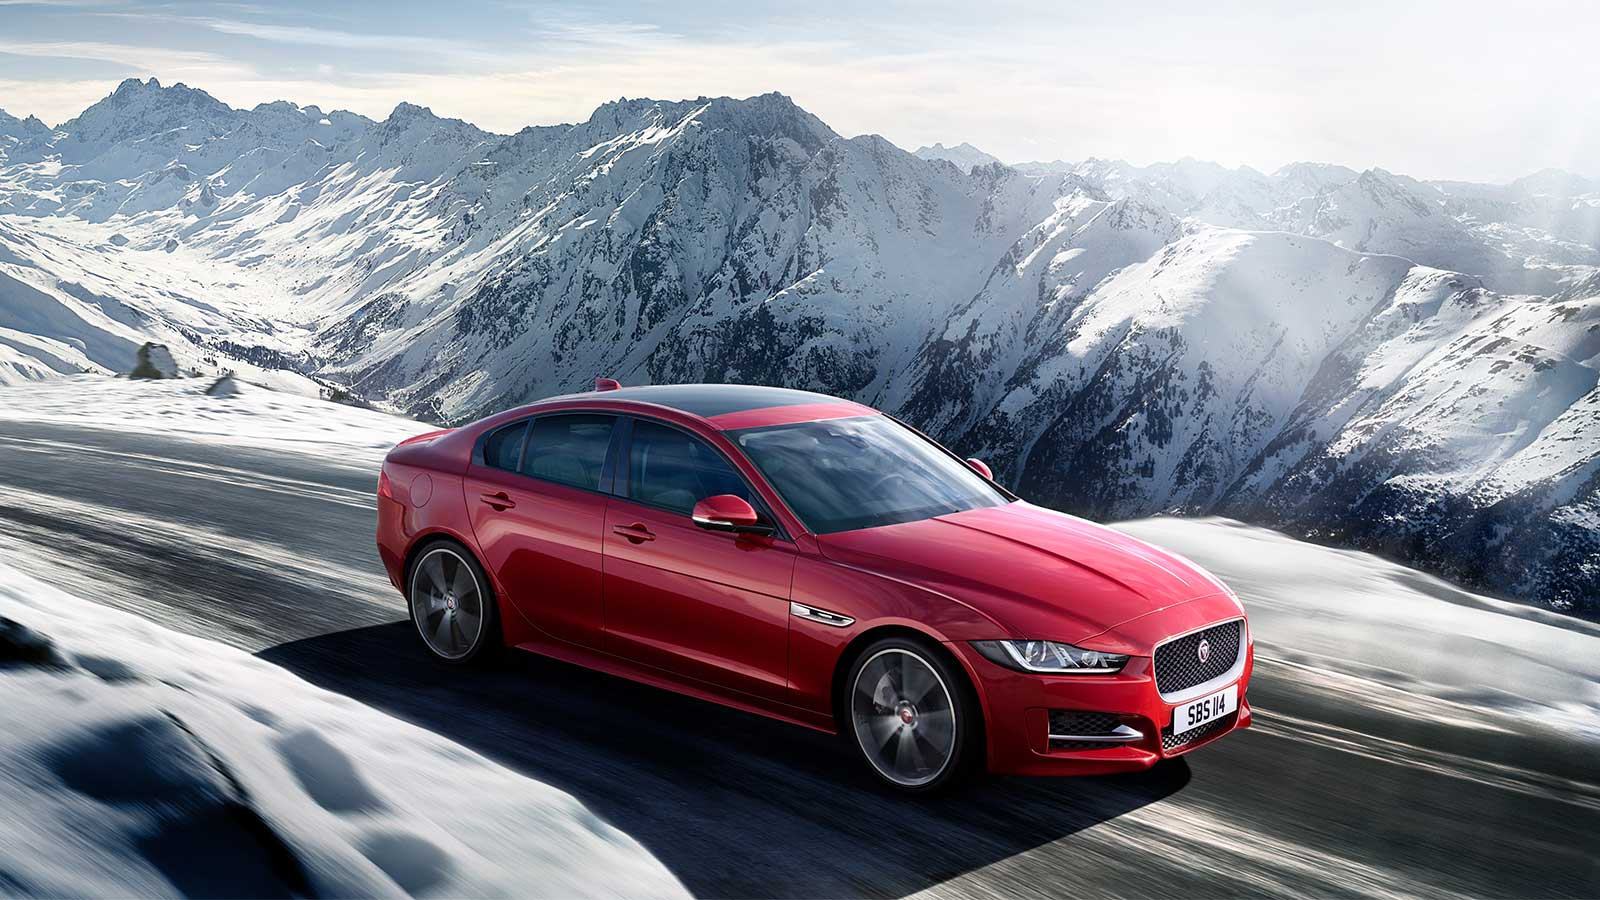 A Red Jaguar Driving Through Some Mountains.